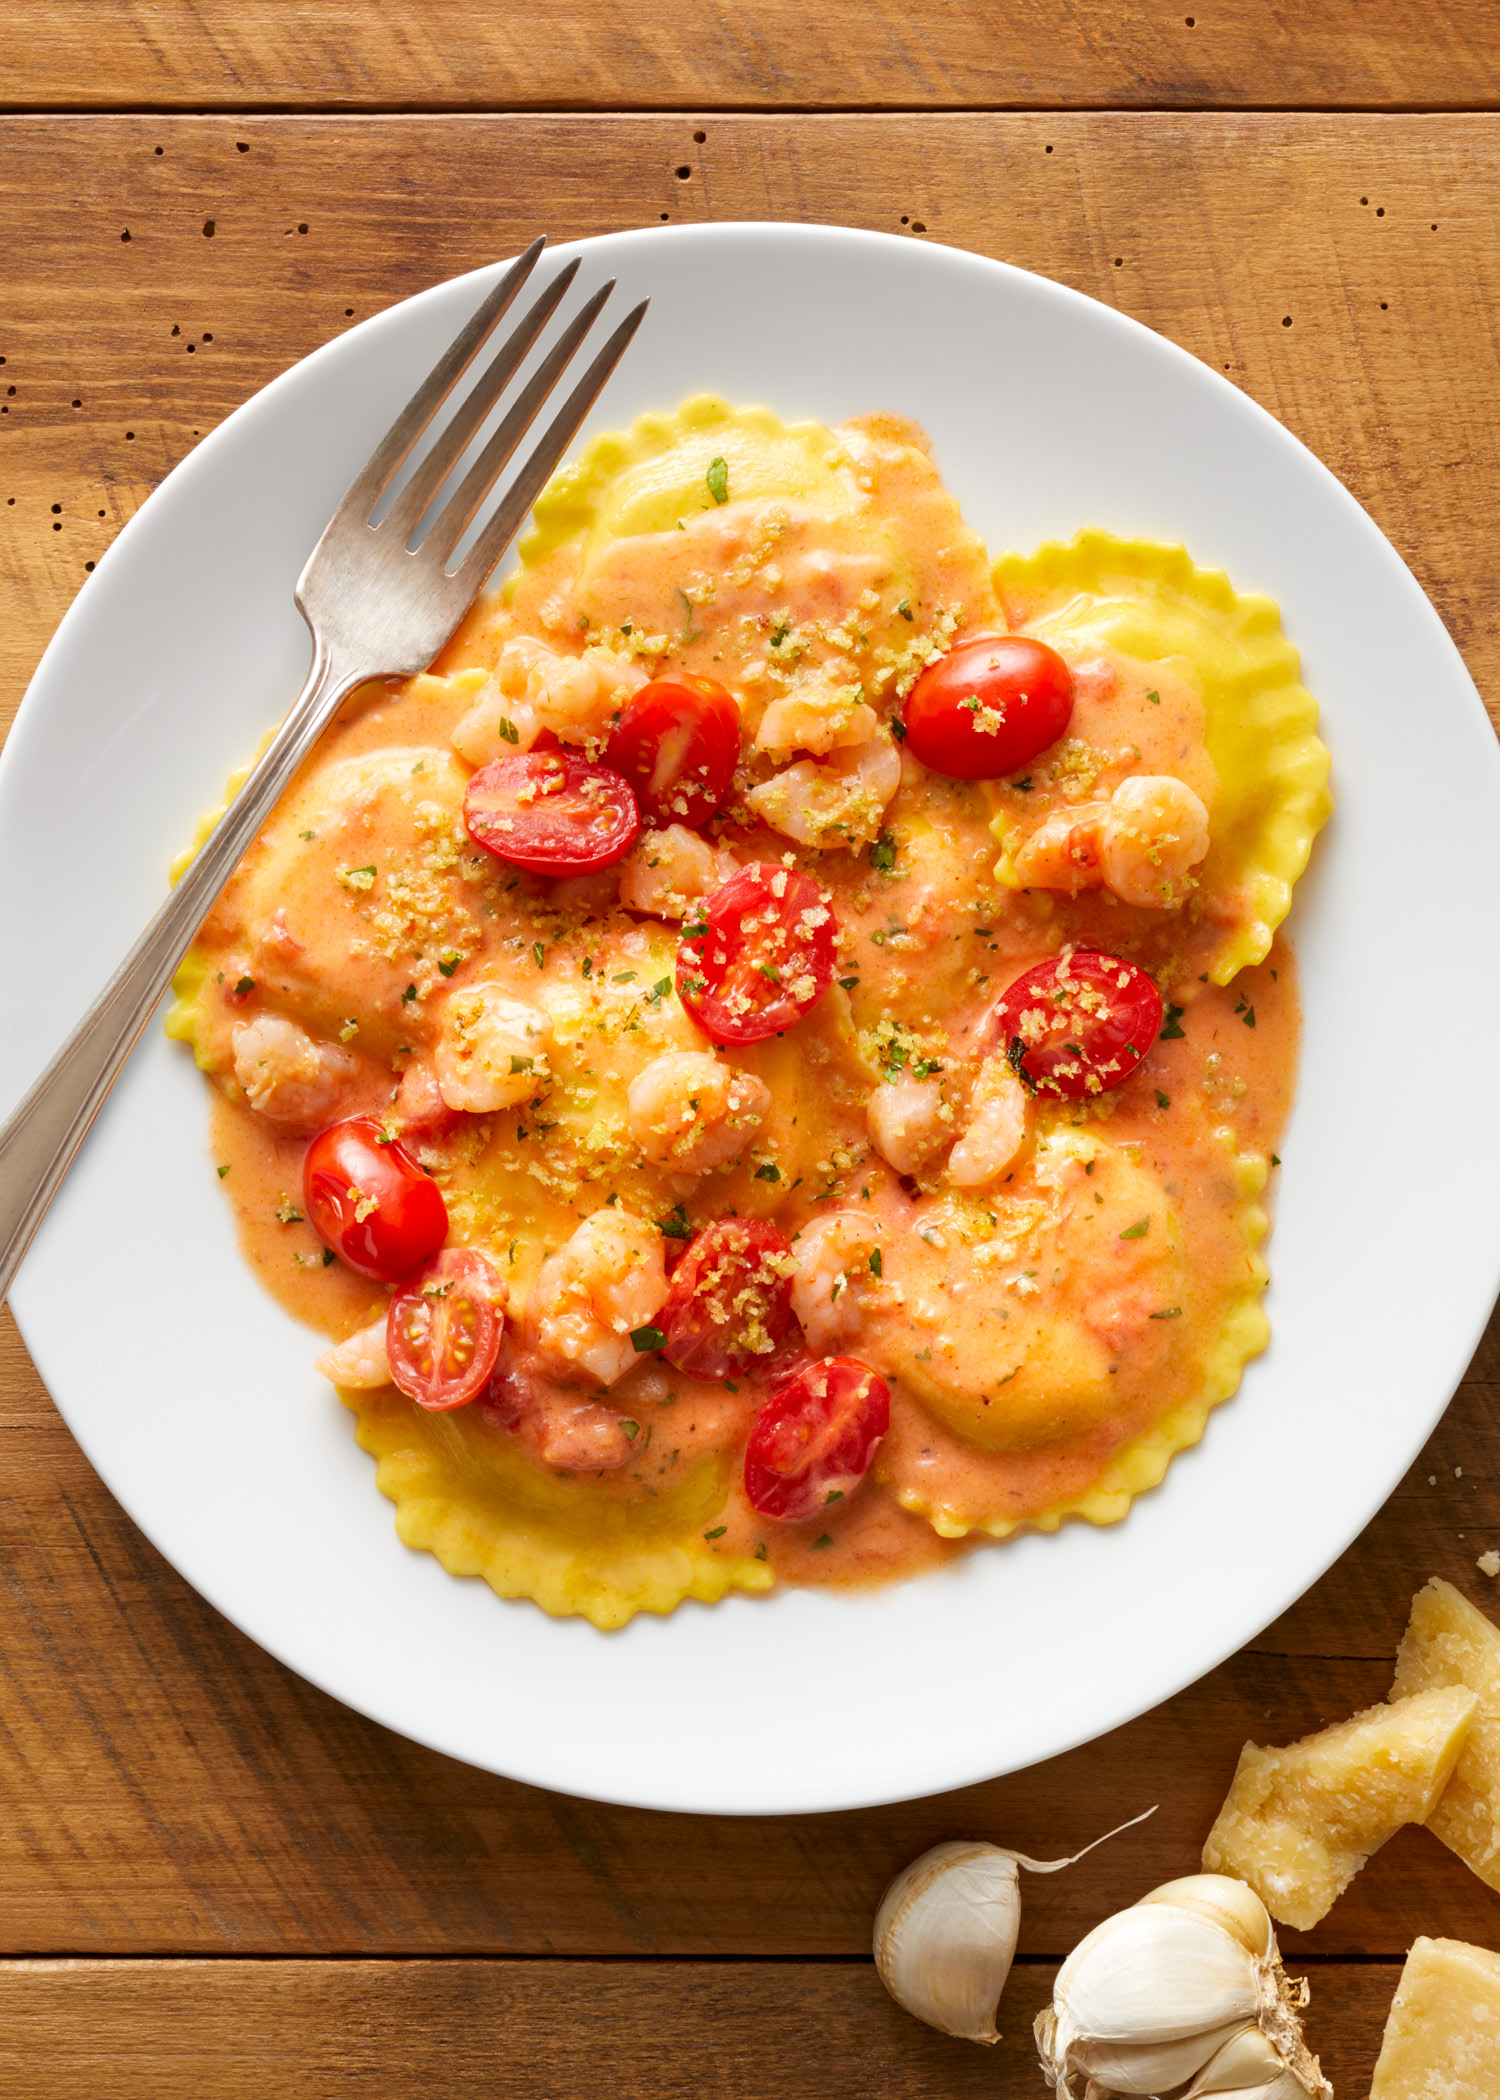 National Ravioli Day Discounts at Bravo! and Brio